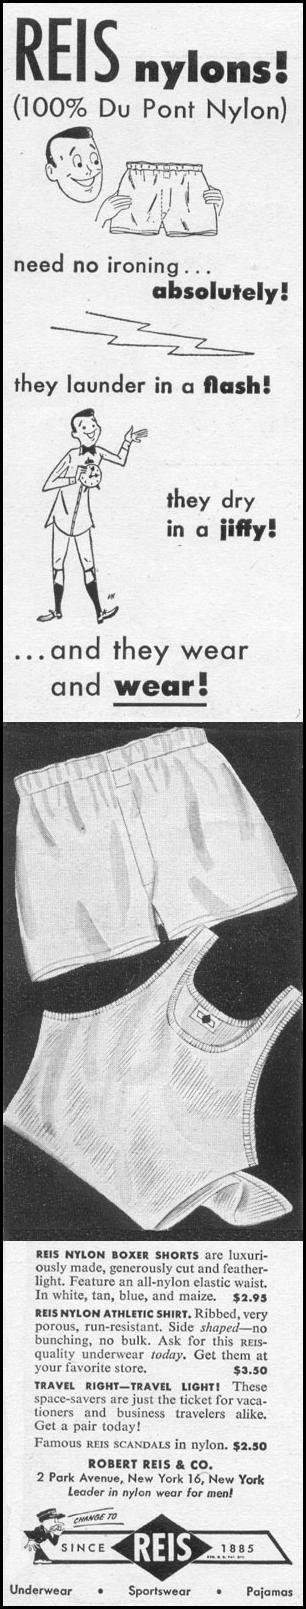 MEN'S NYLON UNDERWEAR LIFE 06/05/1950 p. 128